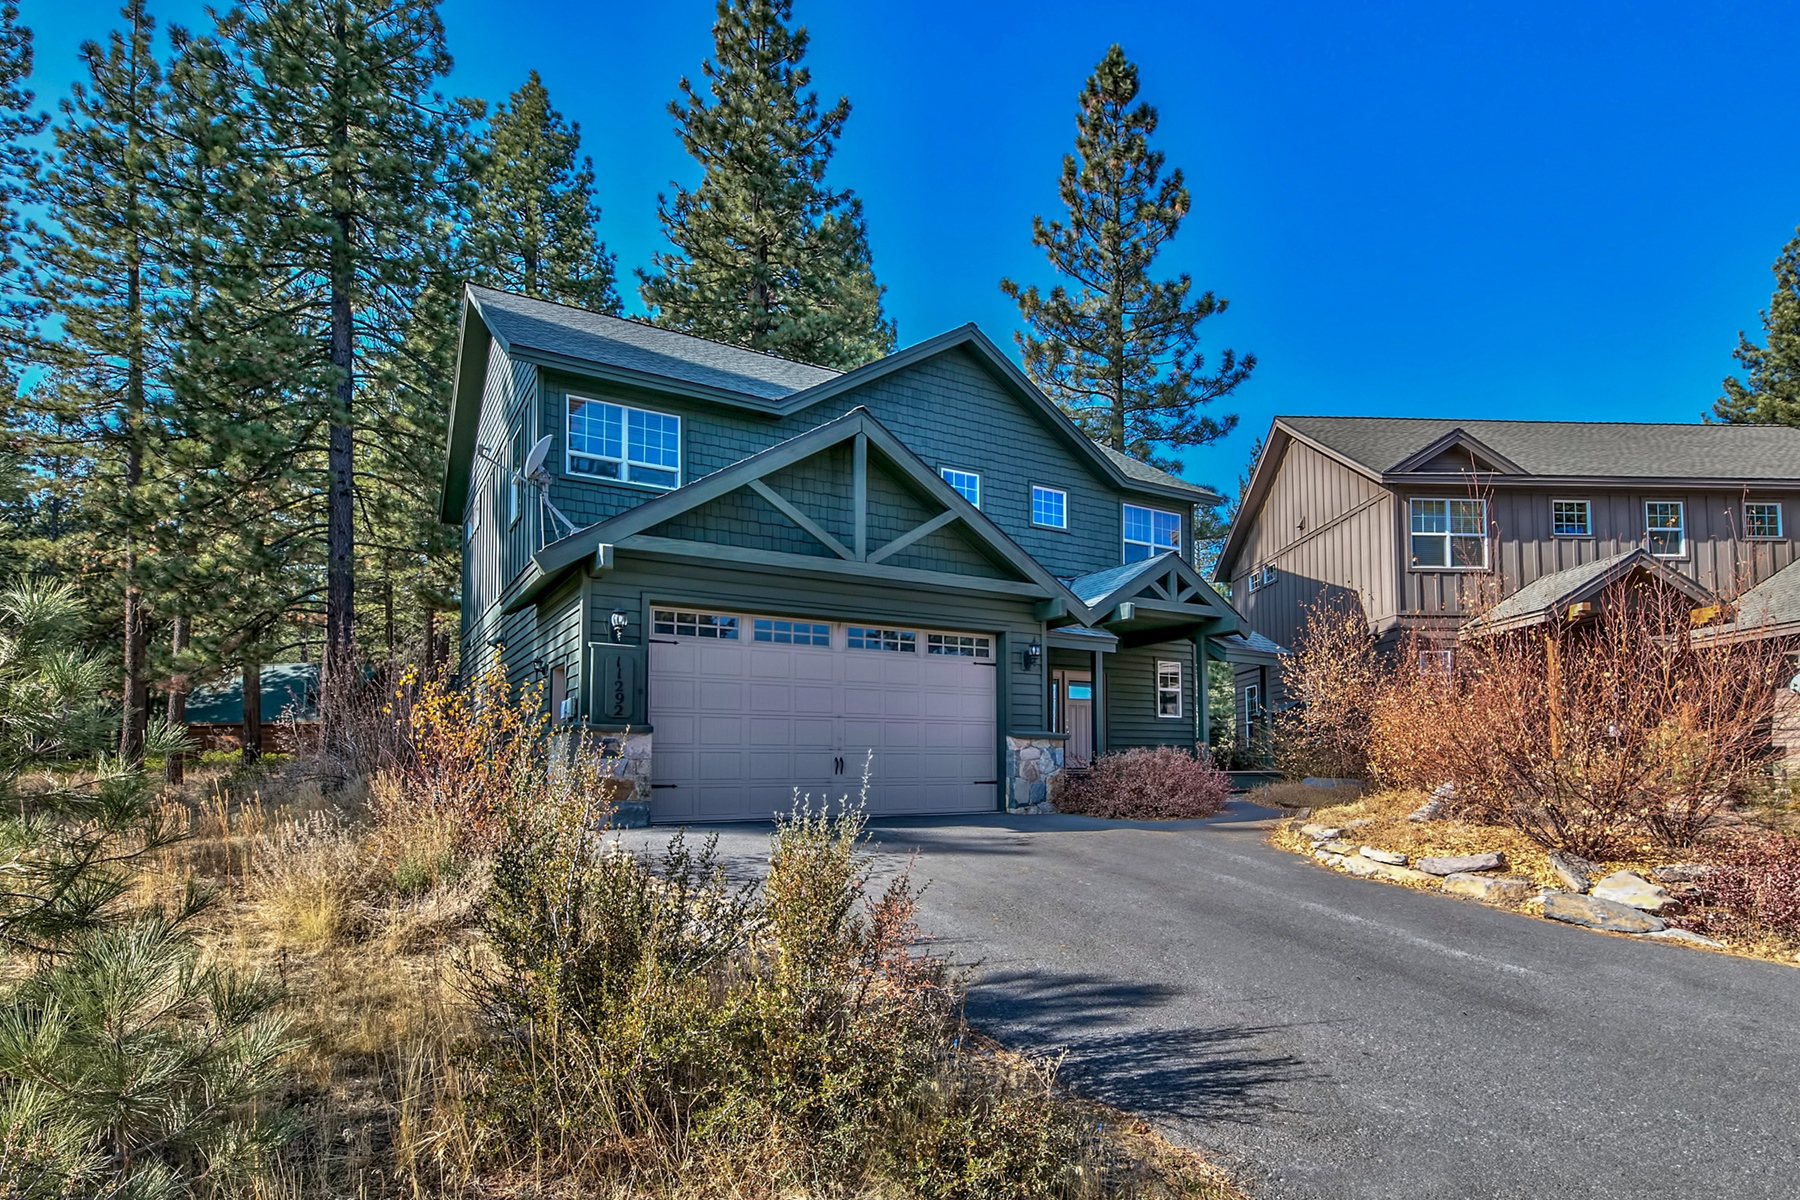 Additional photo for property listing at 11292 Wolverine Circle, Truckee, CA 11292 Wolverine Circle Truckee, California 96161 United States